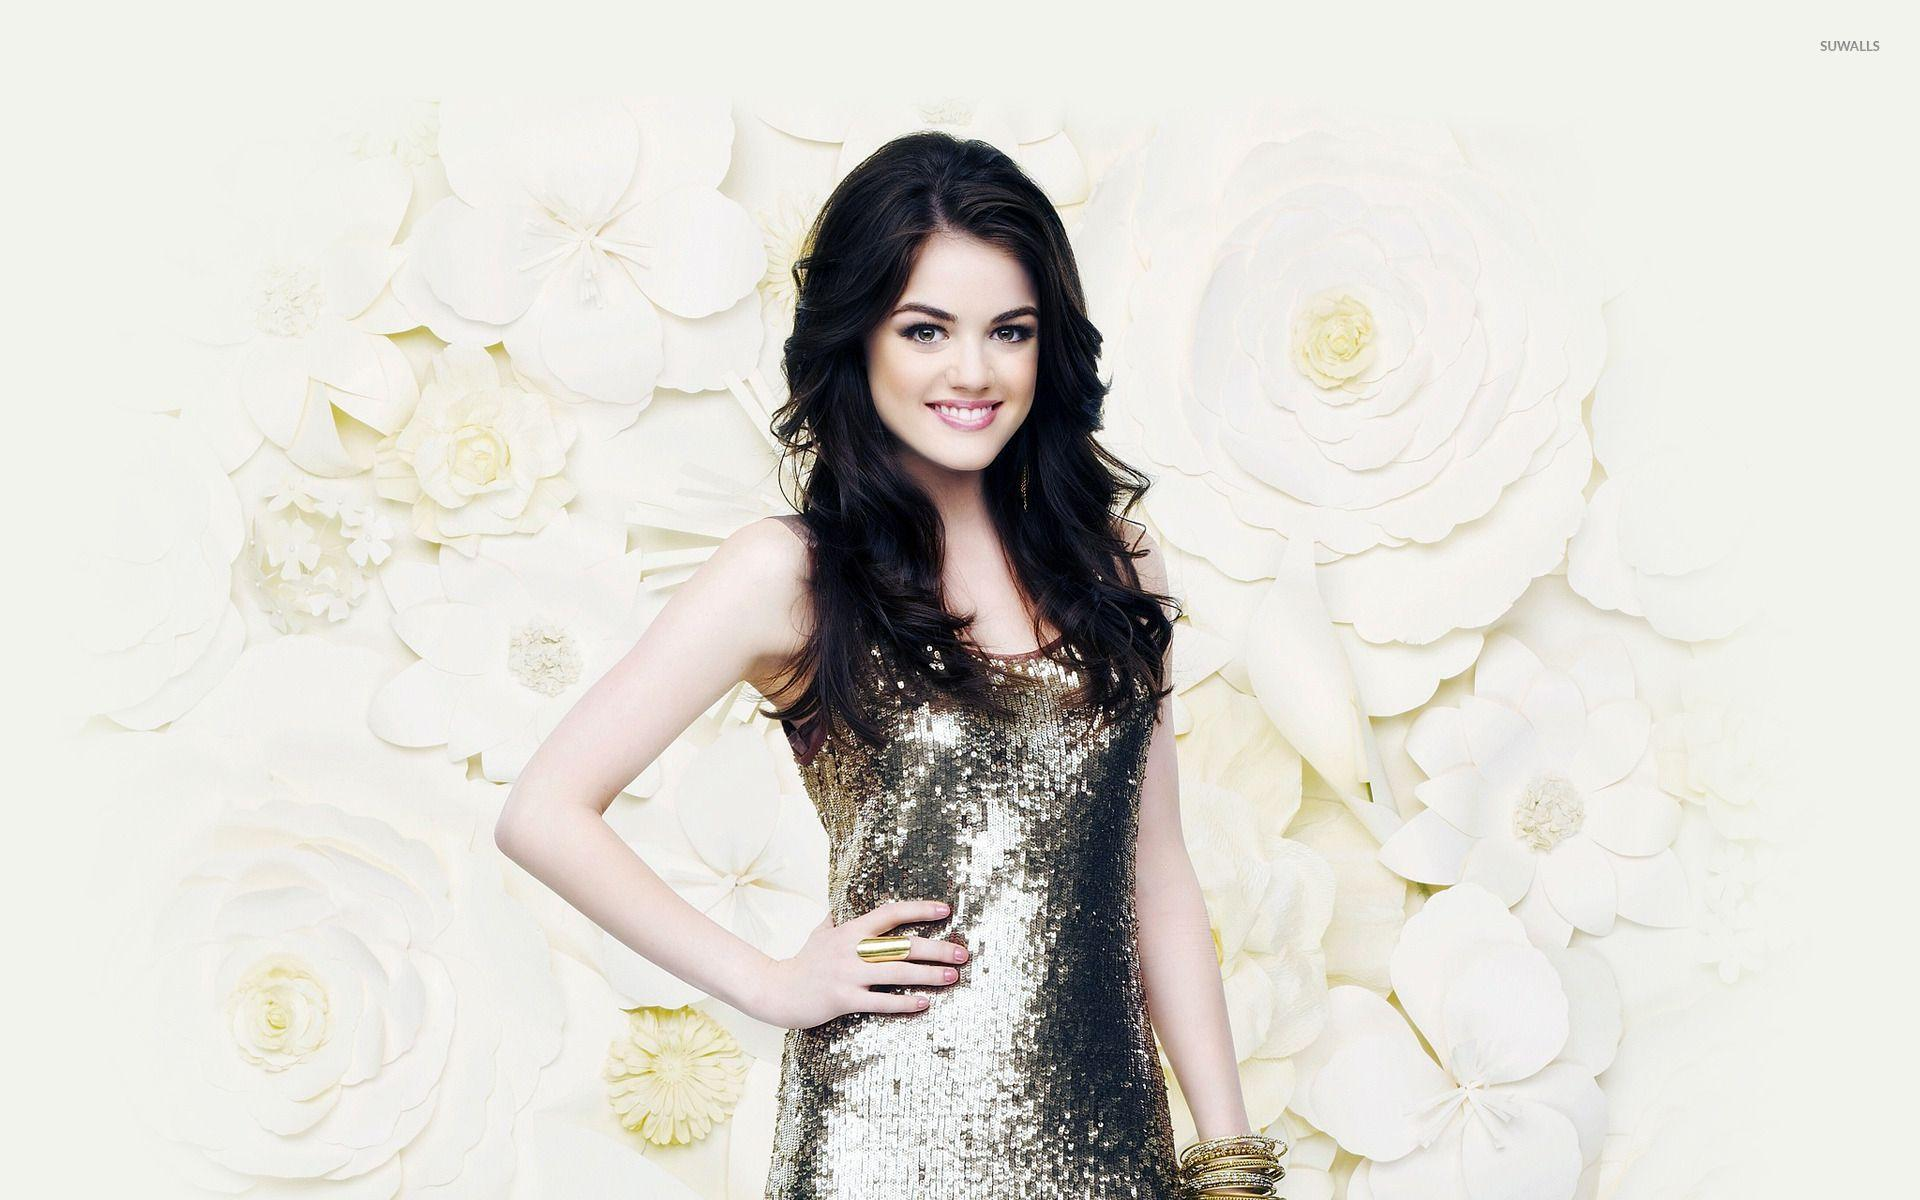 Lucy Hale [4] wallpaper - Celebrity wallpapers - #12678